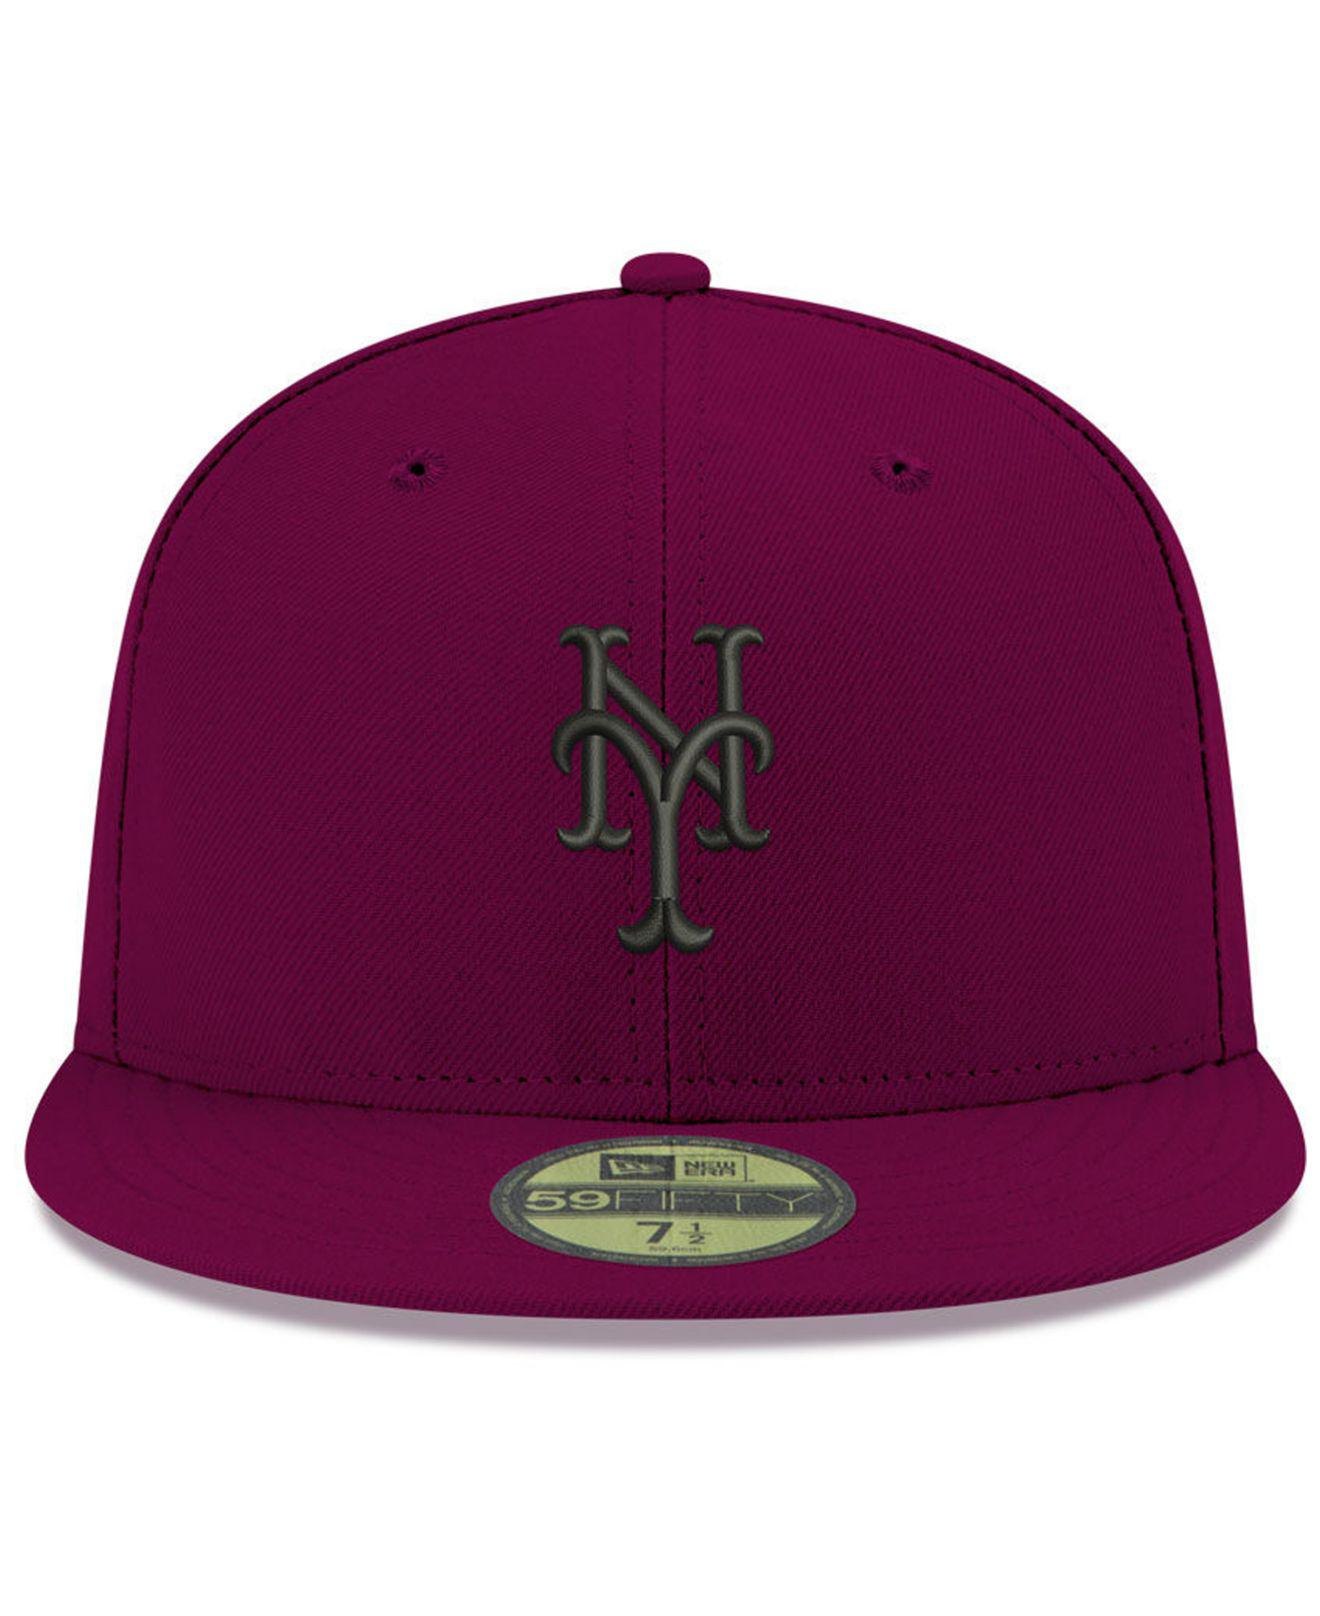 d6cc93787 Lyst - KTZ New York Mets Reverse C-dub 59fifty Fitted Cap in Purple for Men